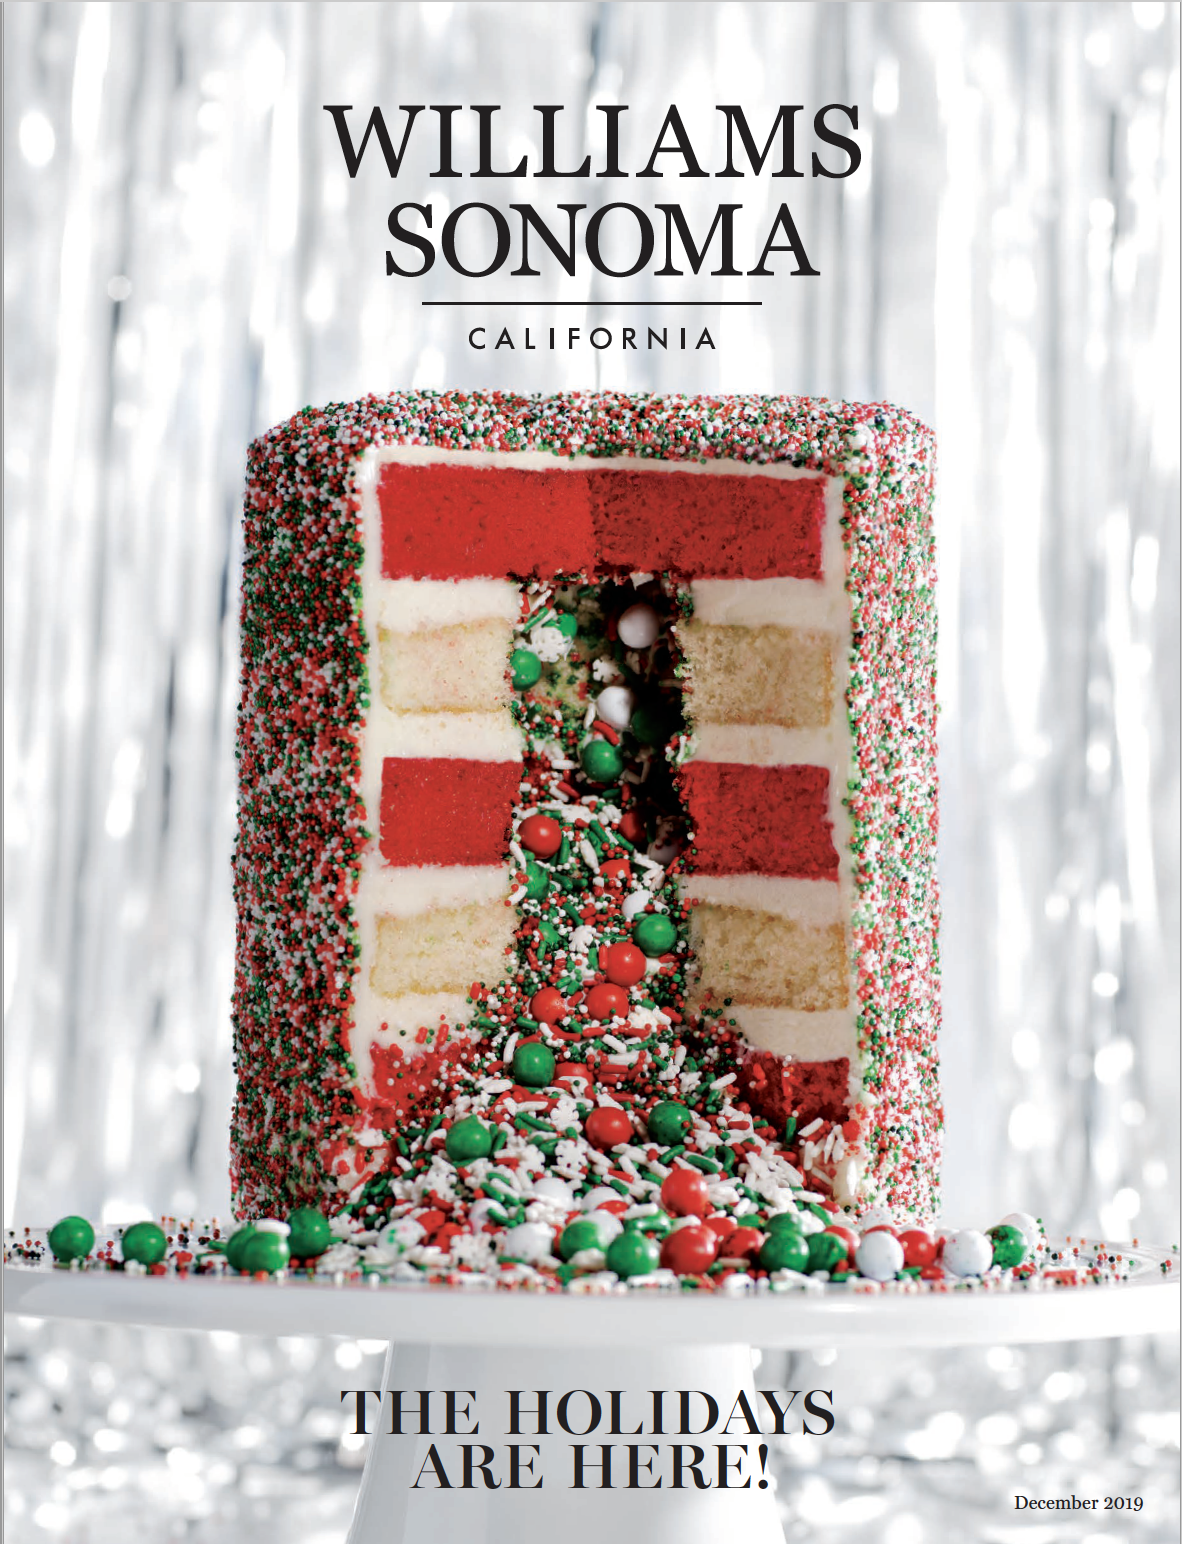 Williams Sonoma 2020 Christmas Catalog The 2019 Hater's Guide to the Williams Sonoma Catalog